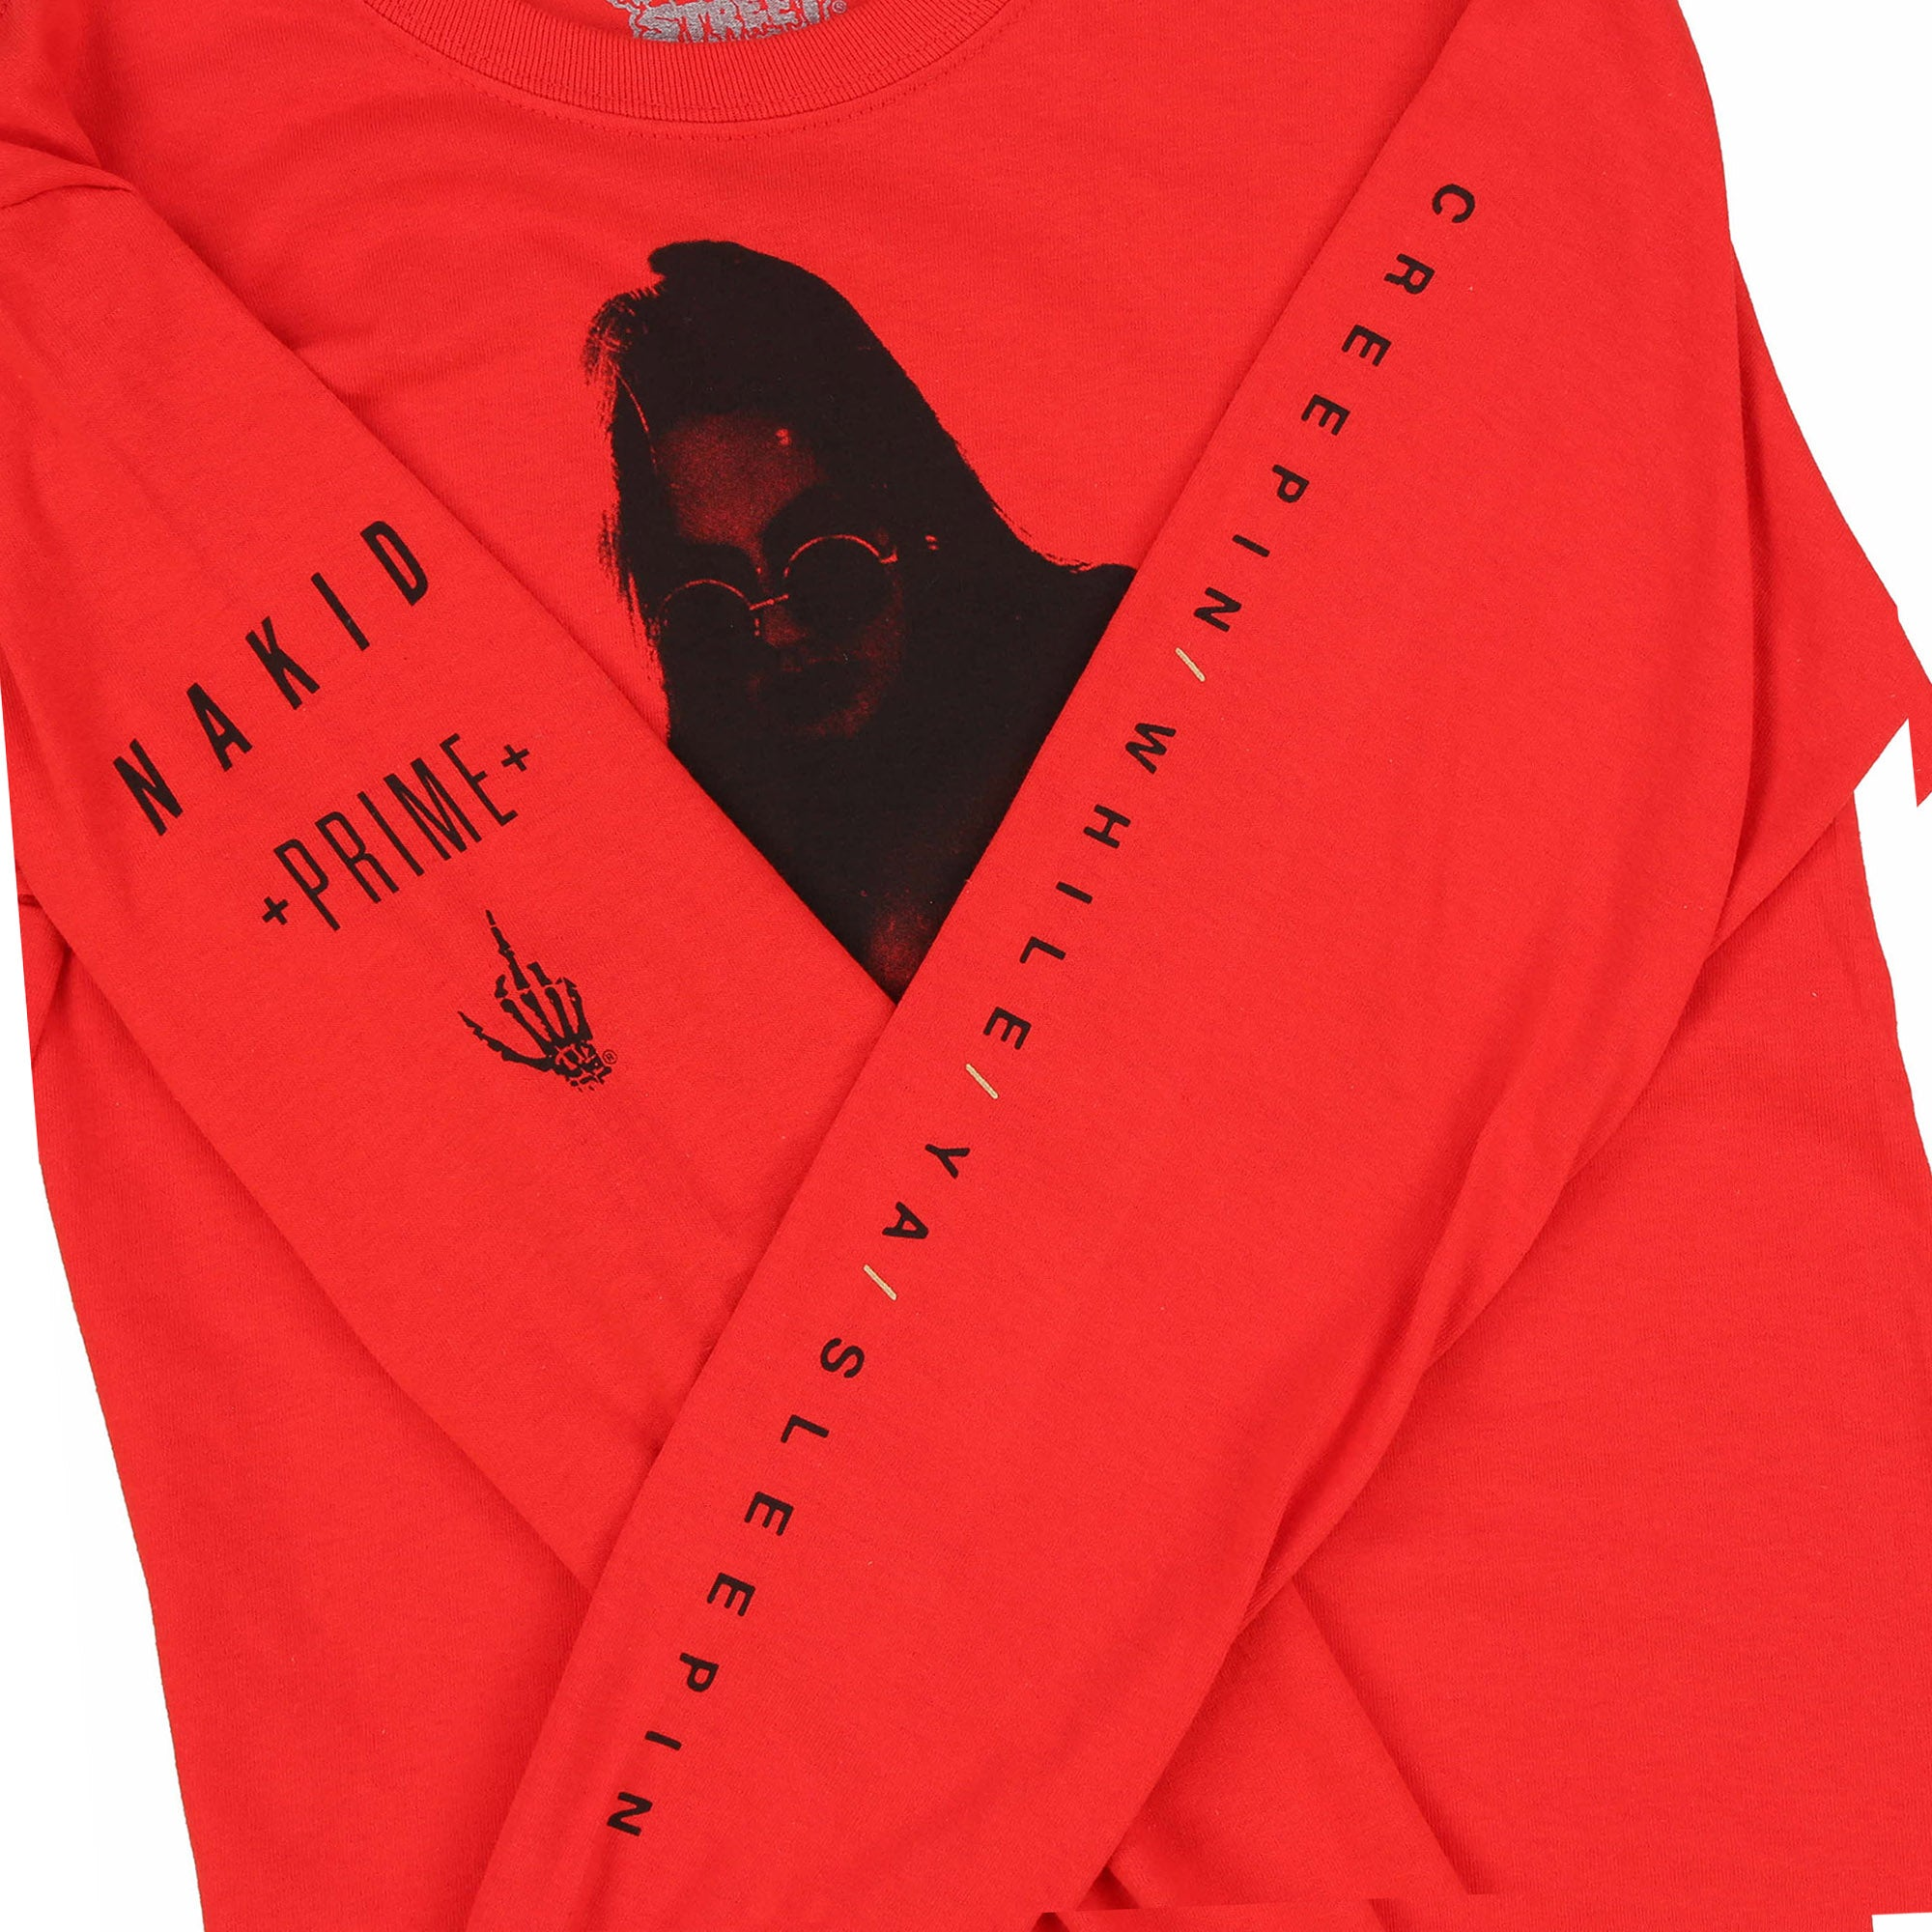 NAKID HOUSE L/S TEE (NAKID MAG x PRIME NIGHTCULT XXXCLUSIVE)